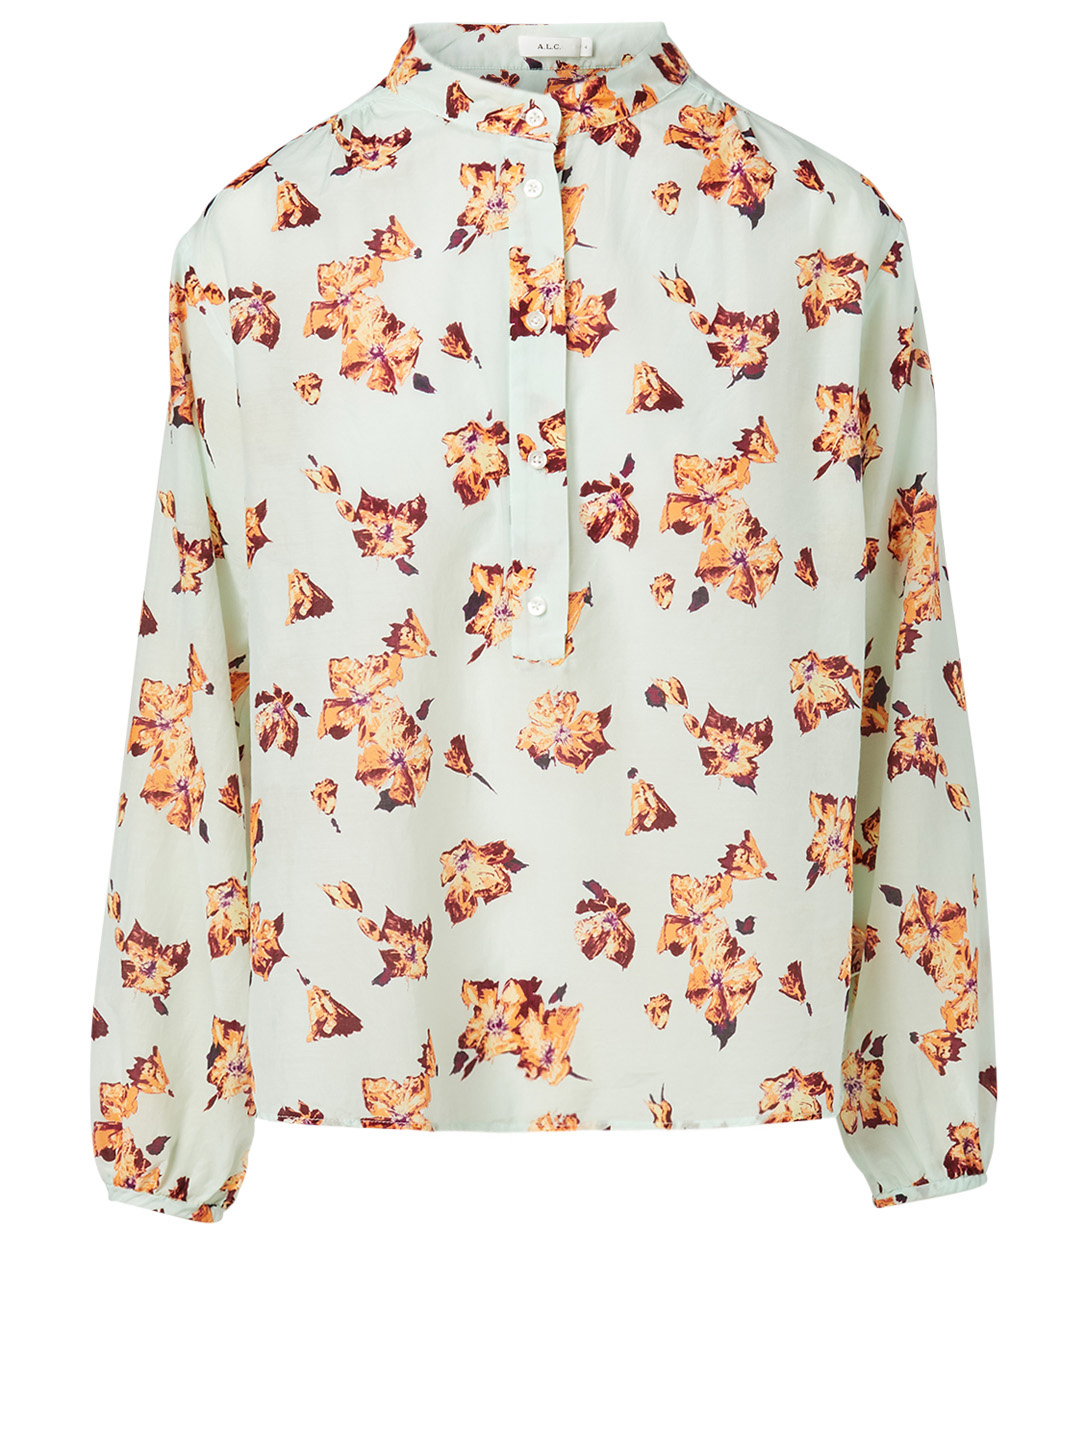 A.L.C. Shira Cotton And Silk Top In Floral Print Women's Multi